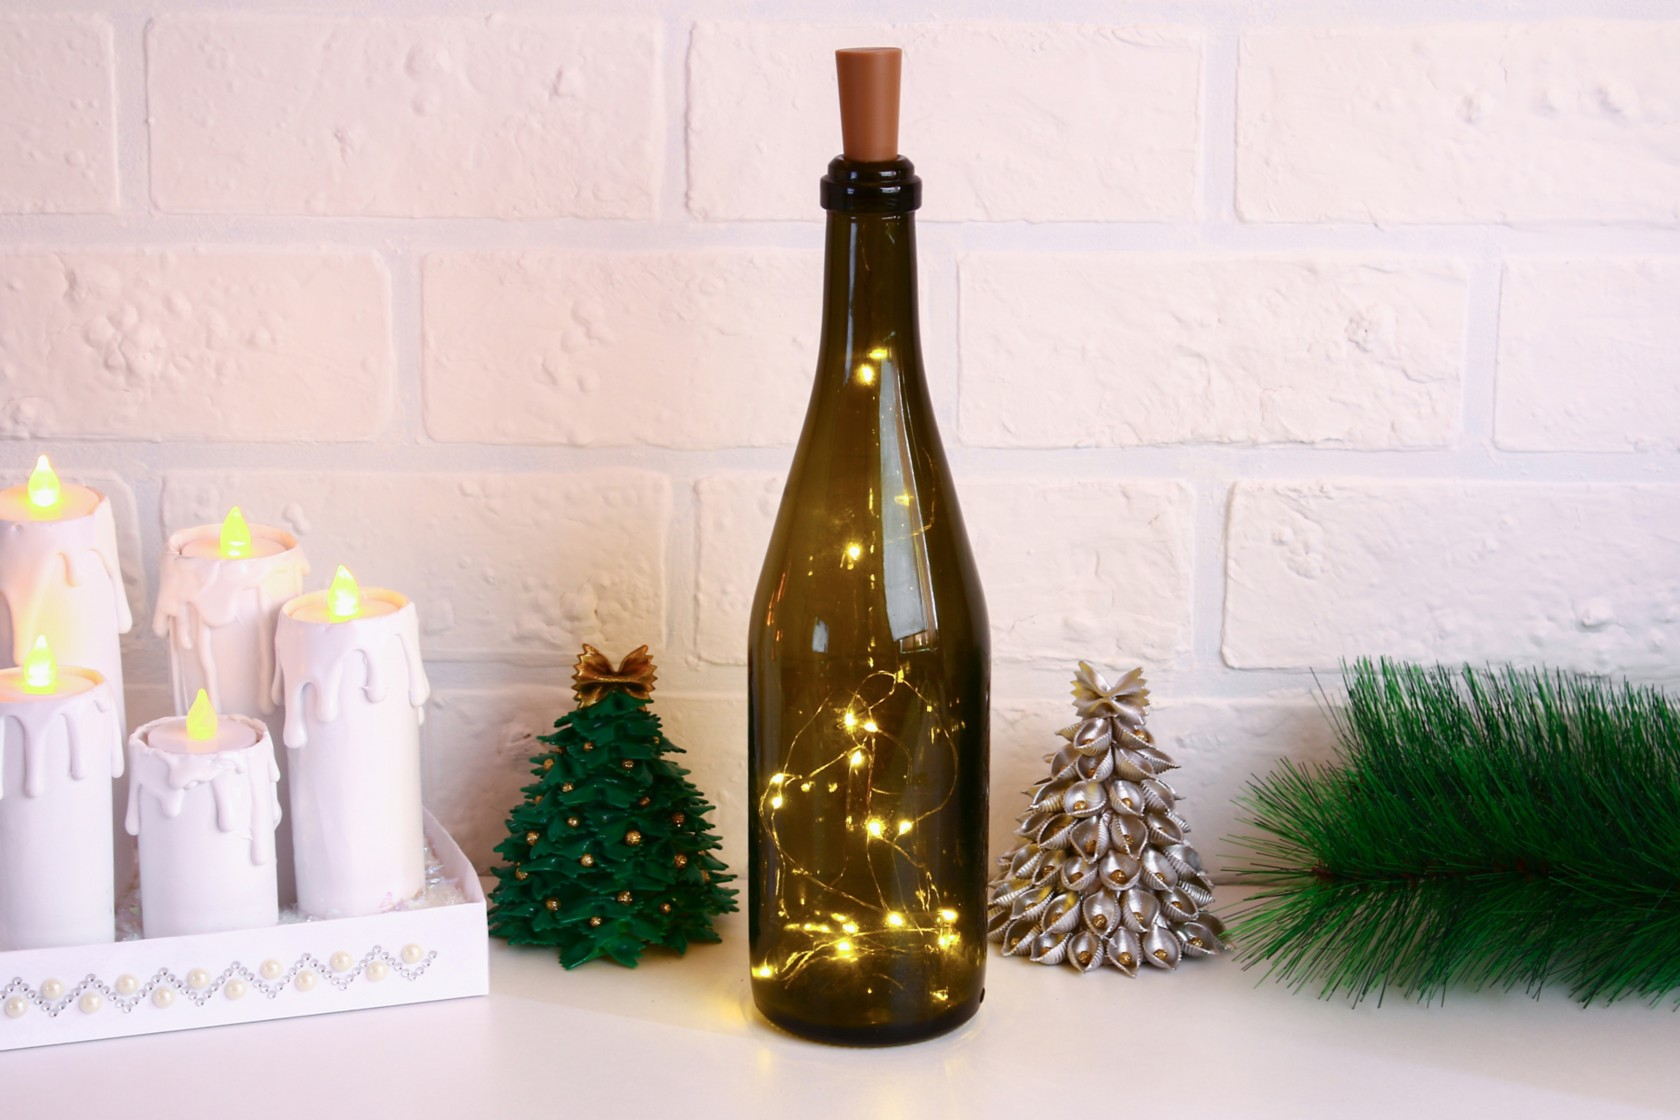 Re-using glass bottles wine bottle with lights